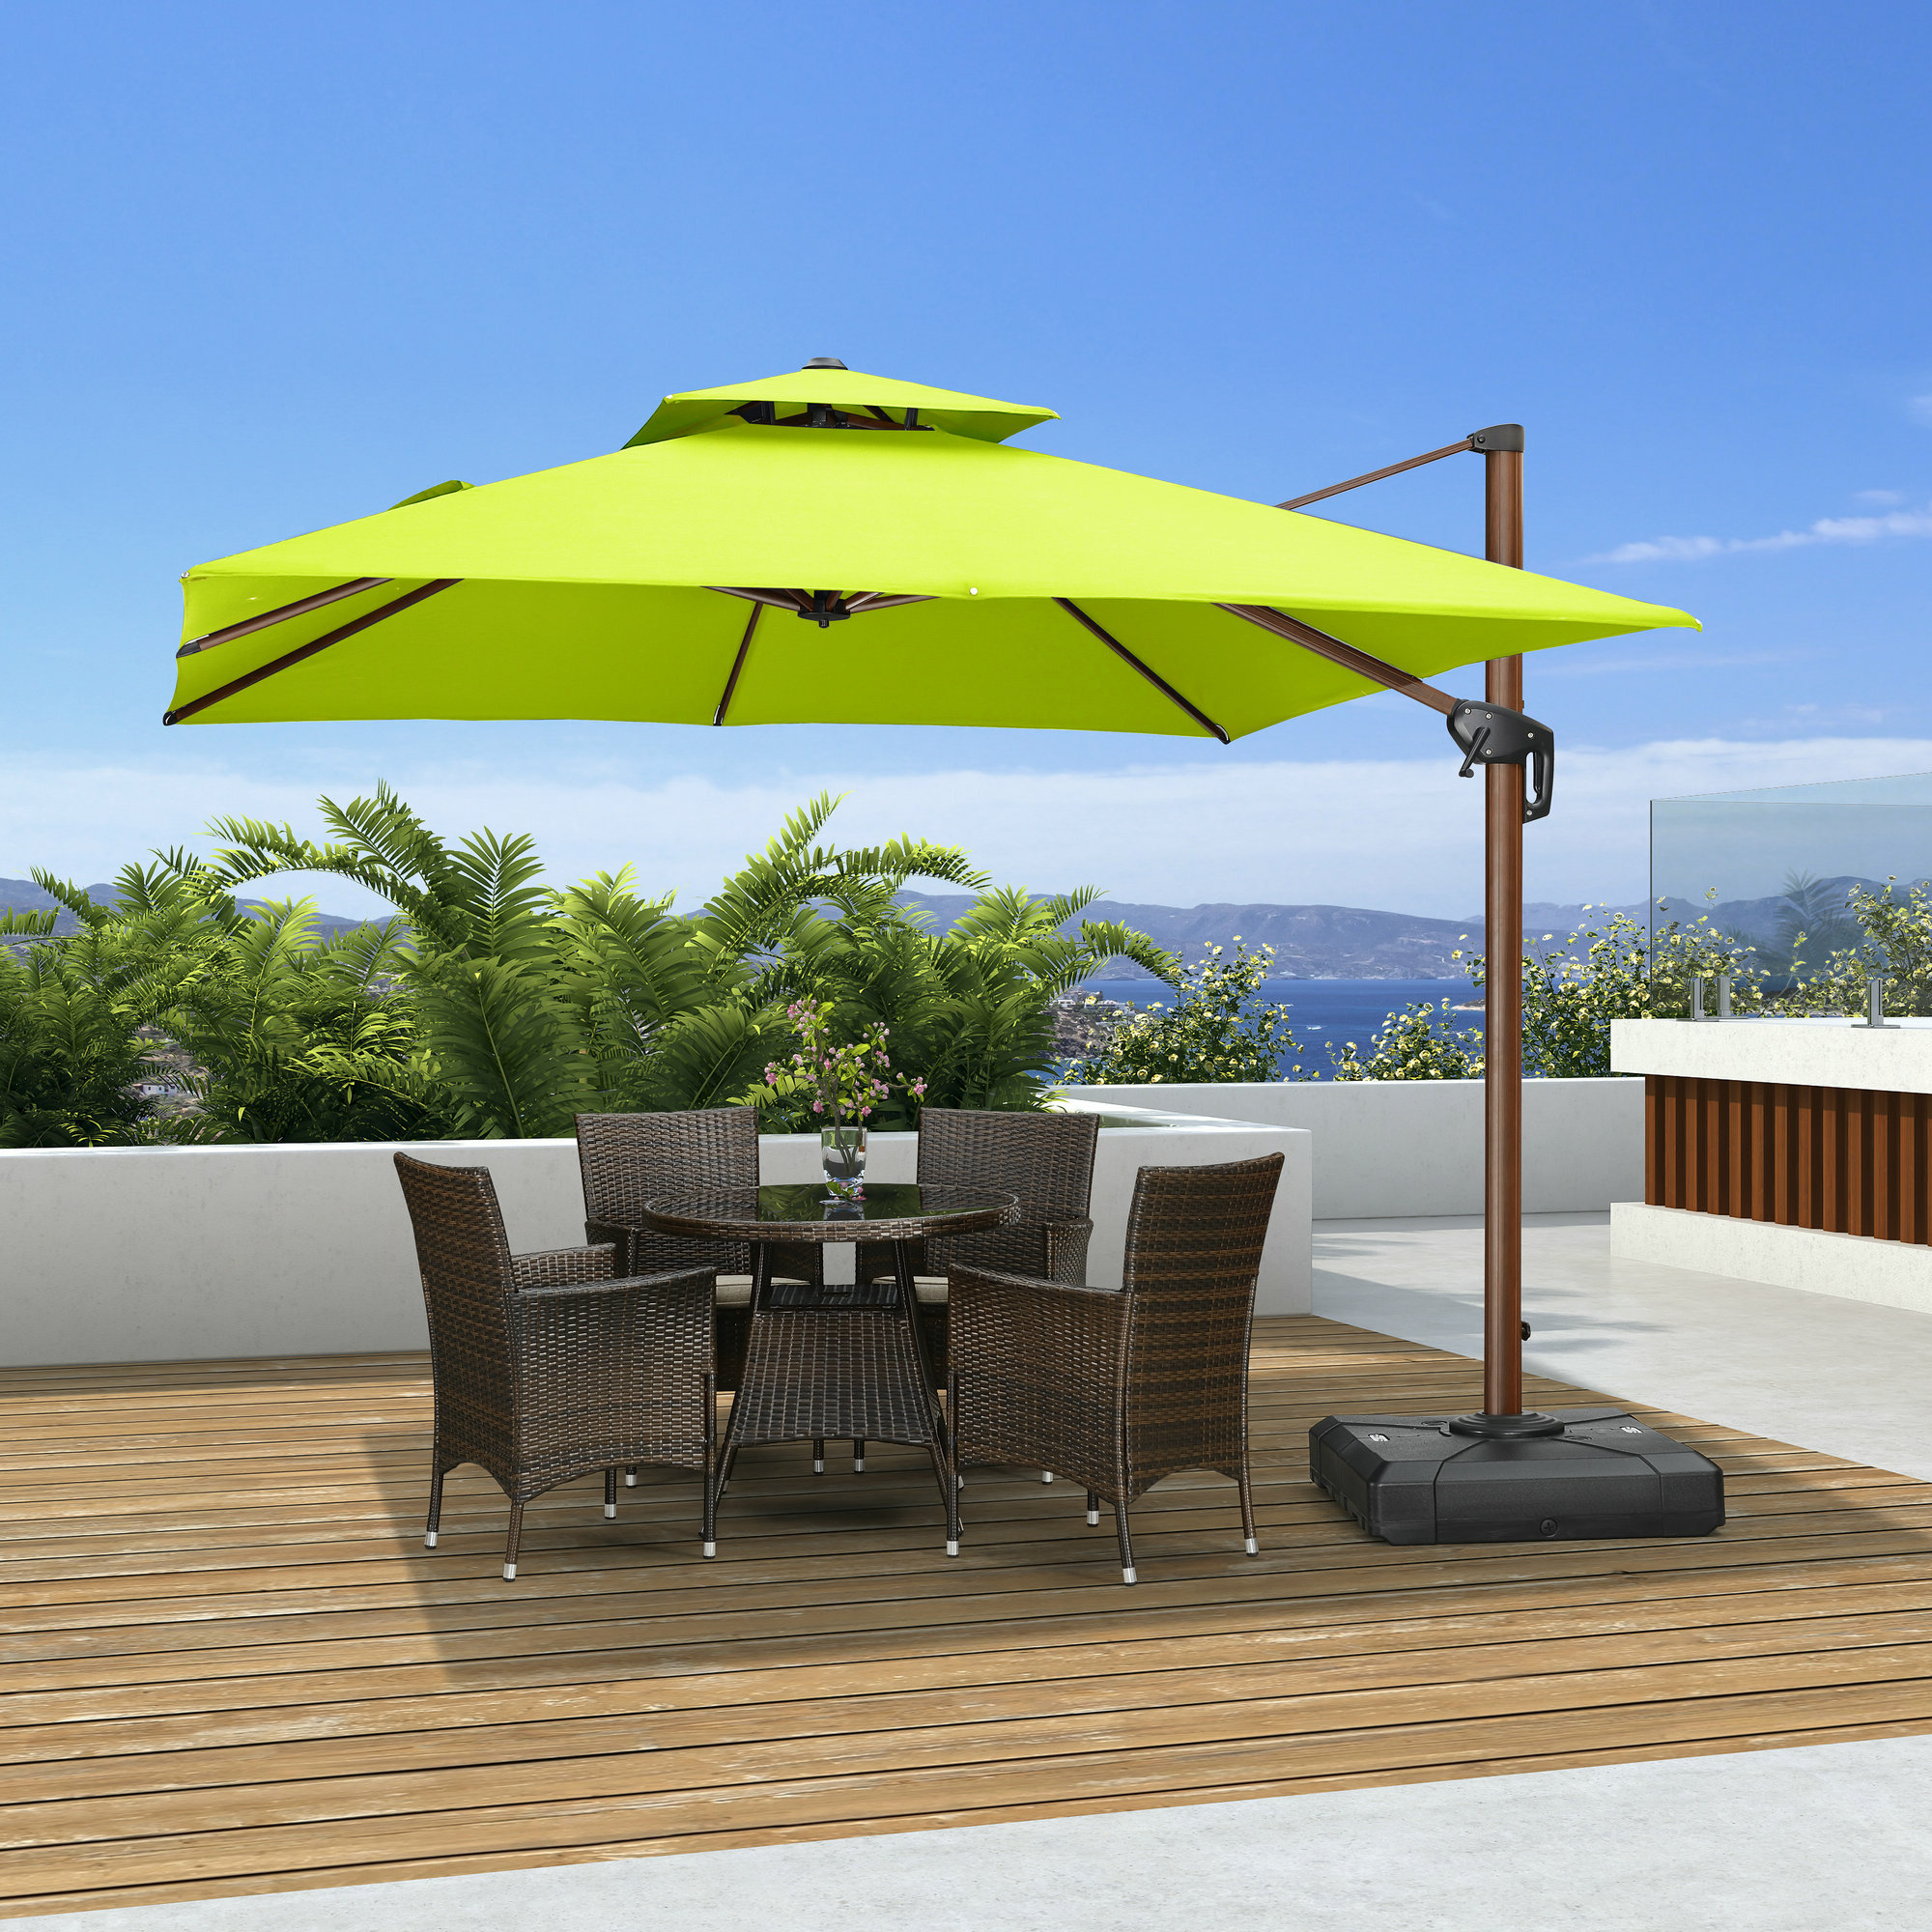 Spitler Square Cantilever Umbrellas Throughout 2020 Waddell 10' Square Cantilever Umbrella (View 3 of 20)